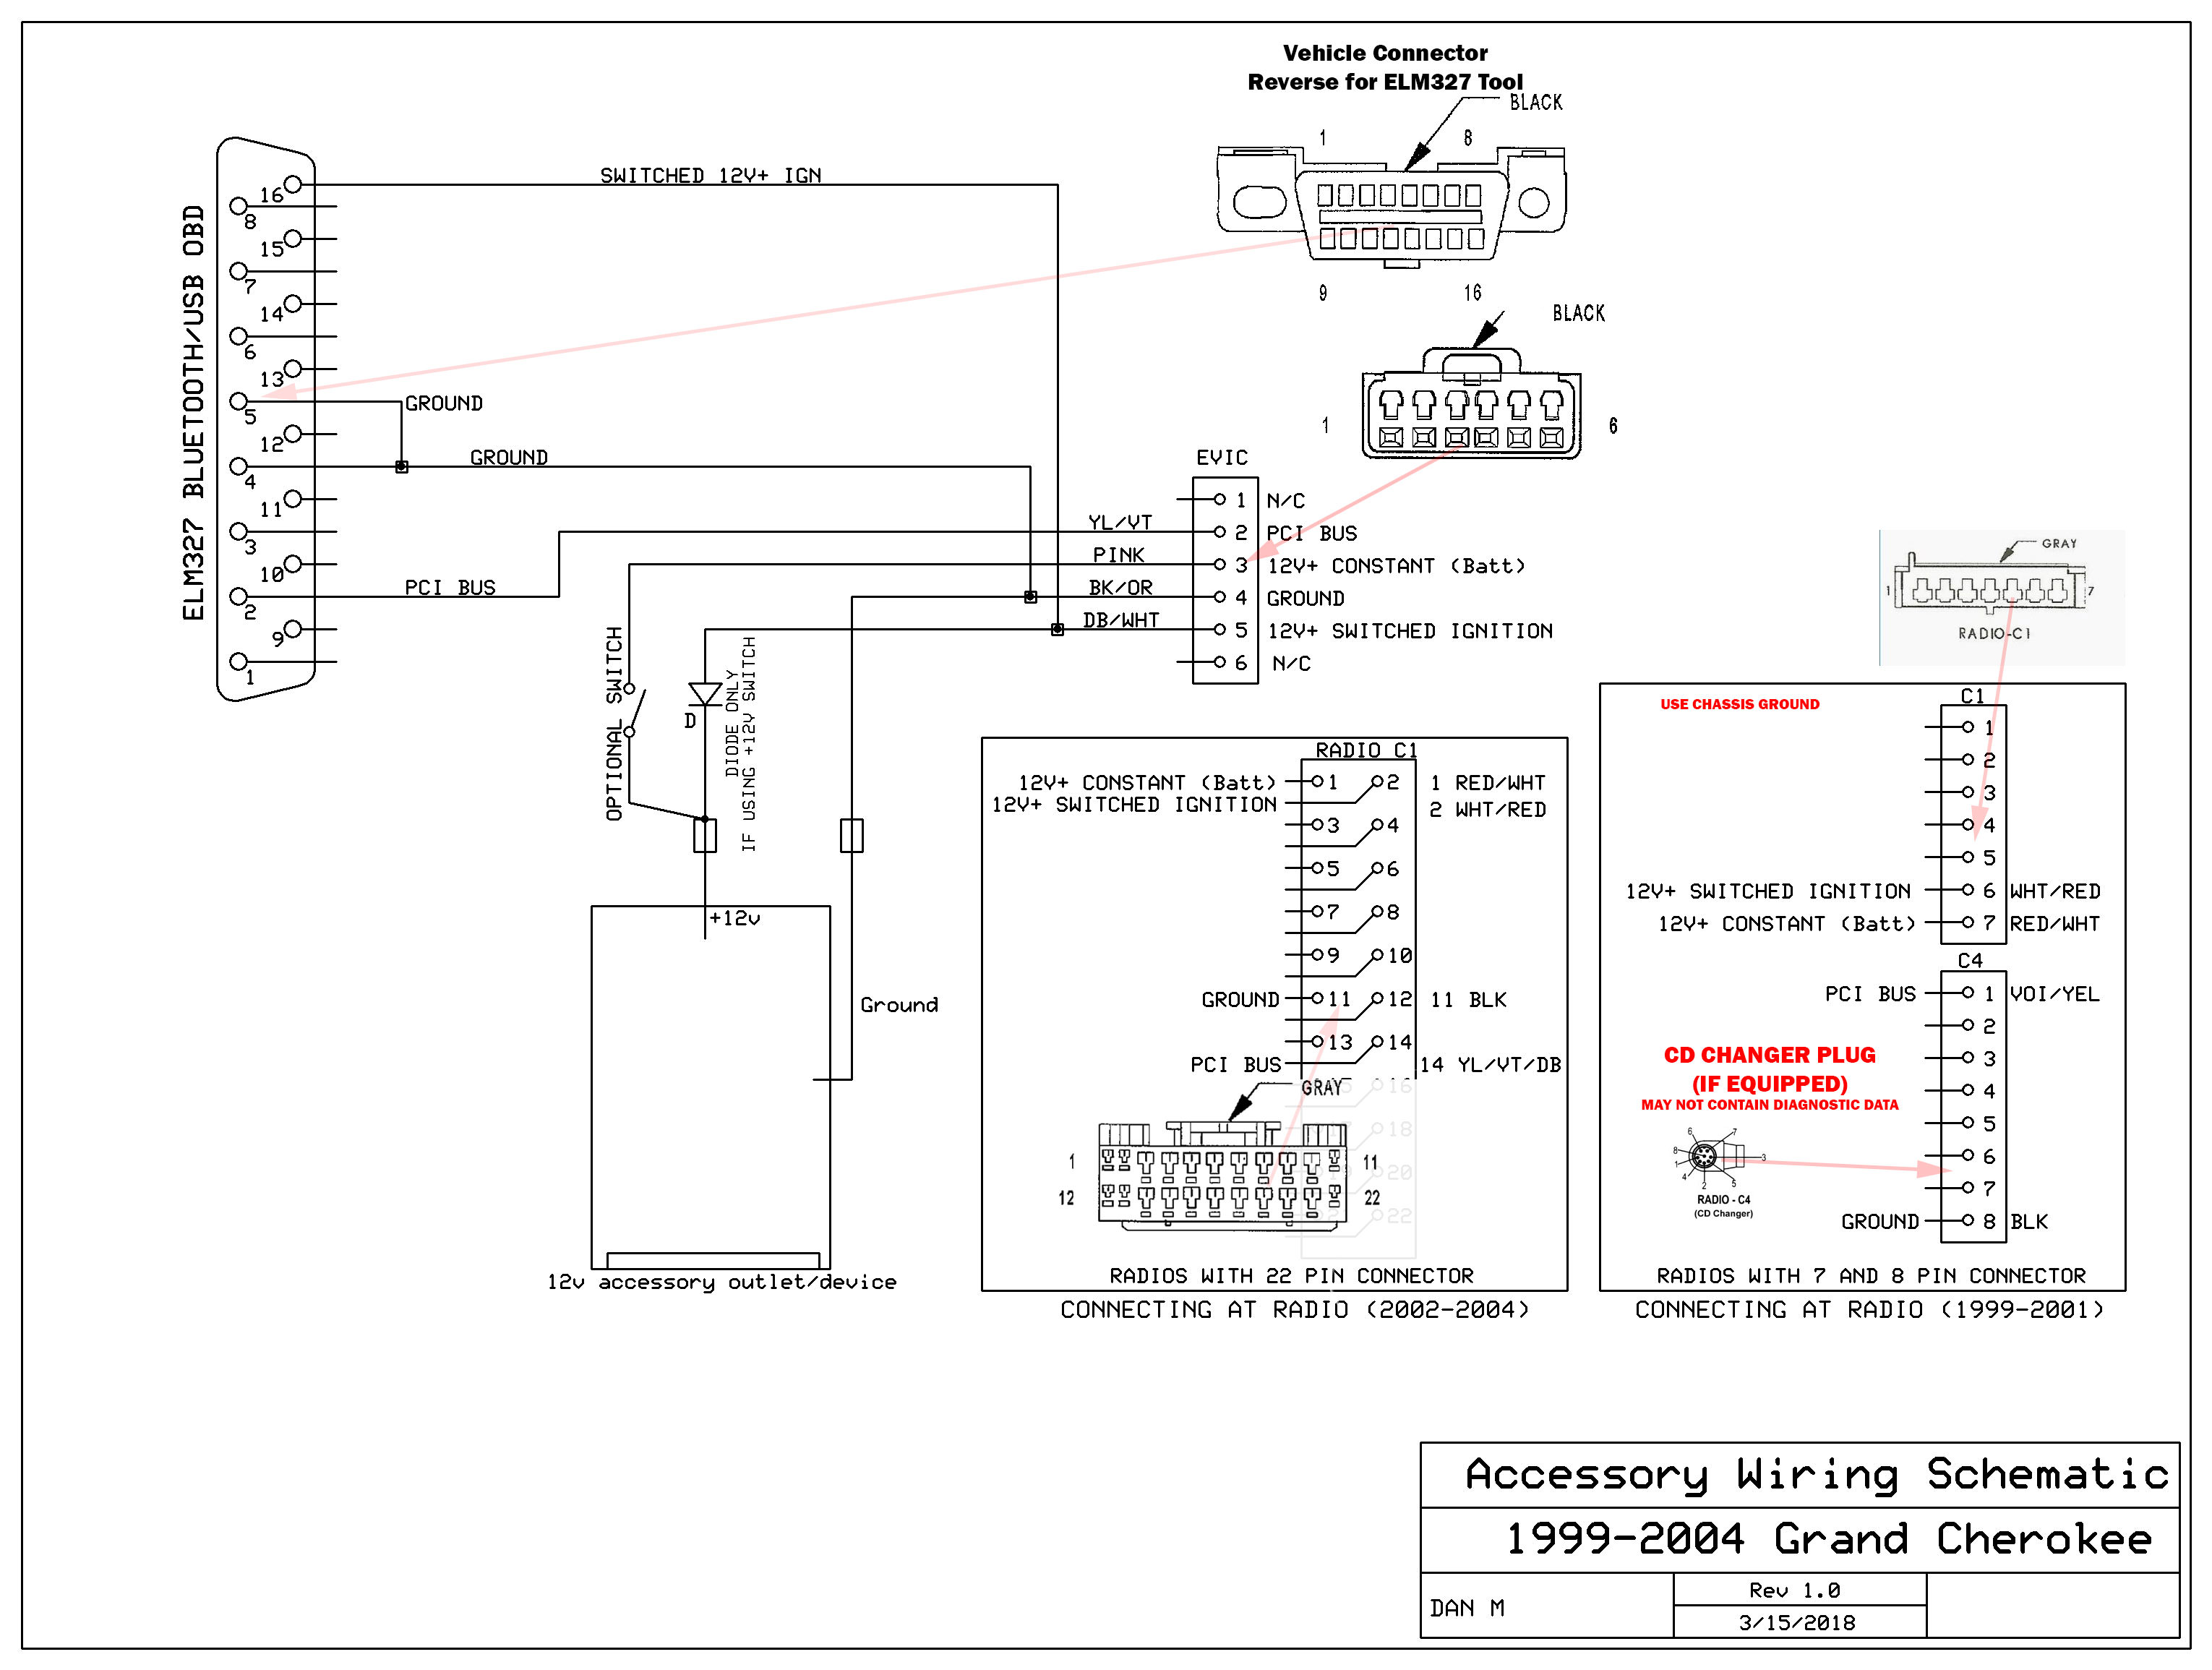 1996 Ford F250 Radio Wiring Diagram Pictures